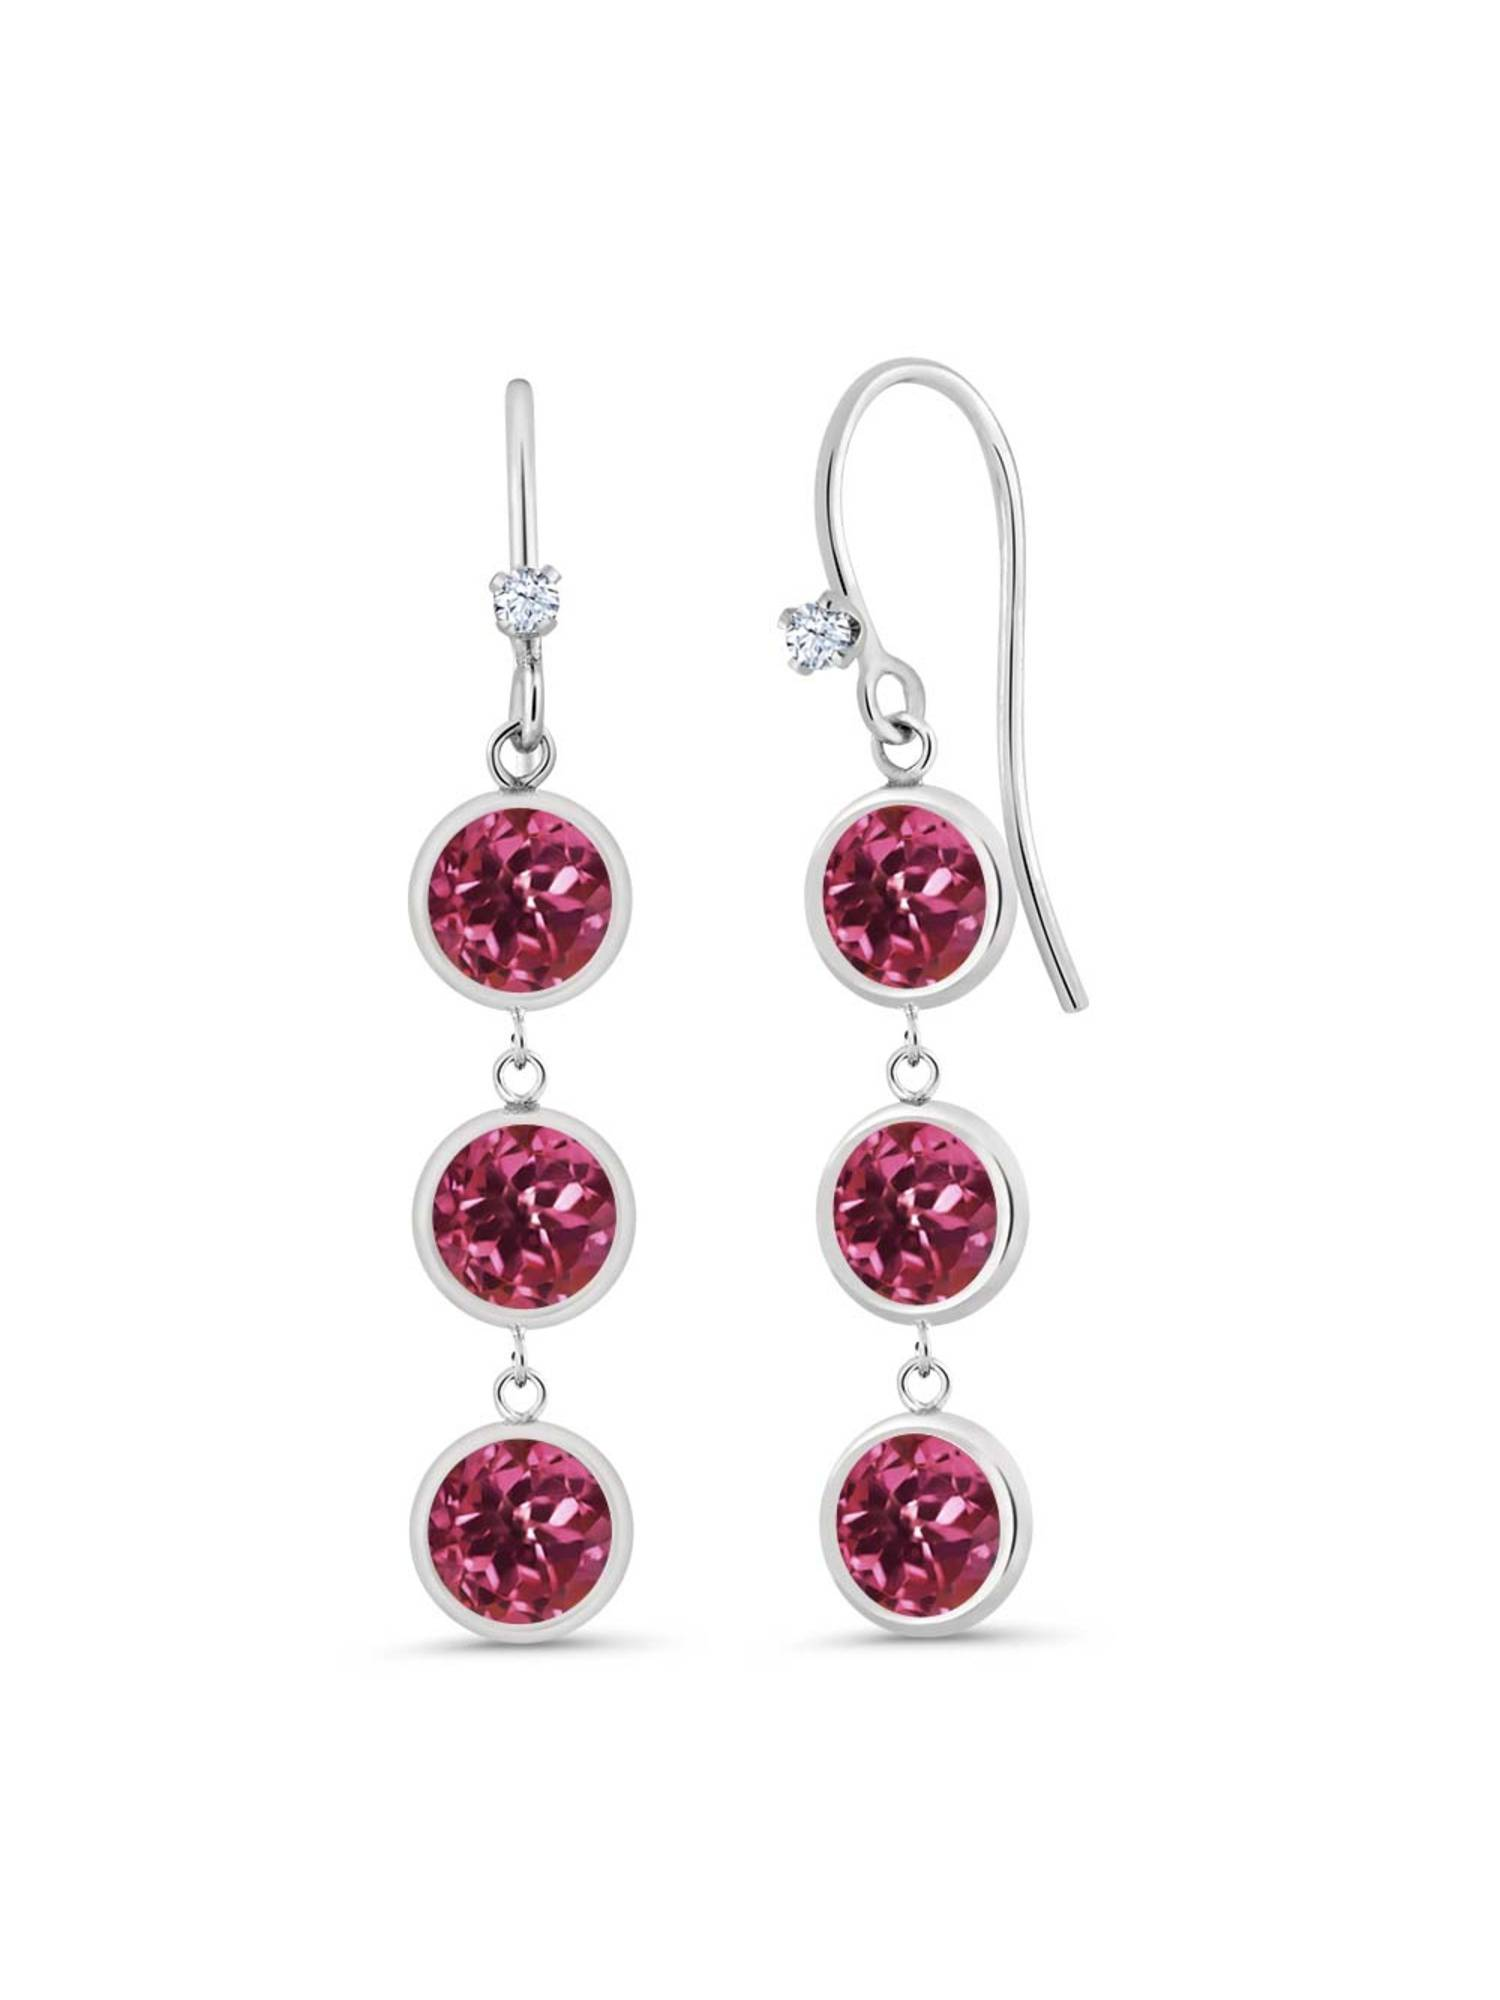 3.03 Ct Round Pink Tourmaline 925 Sterling Silver Earrings by